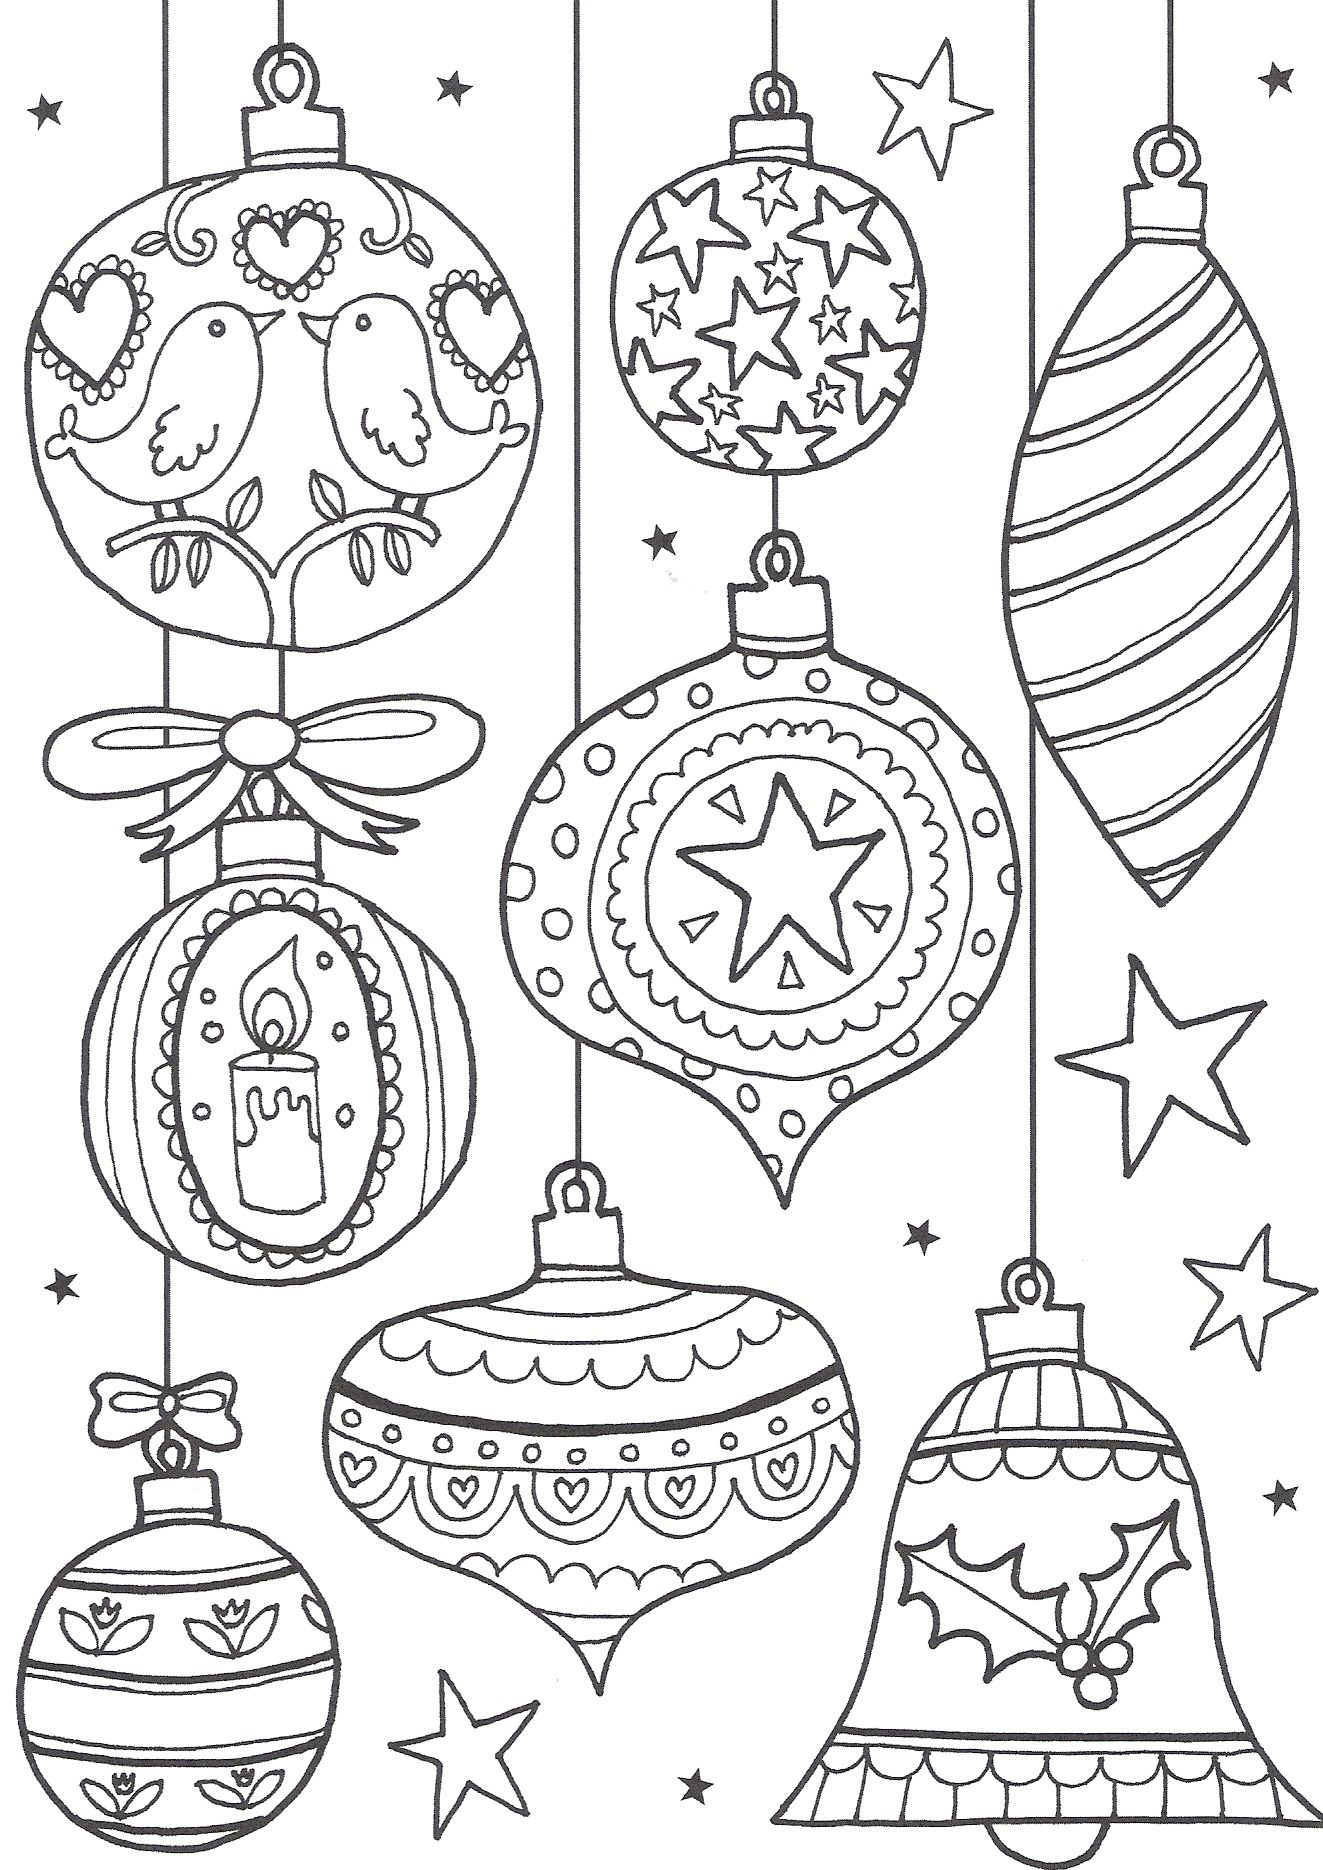 Christmas Coloring Pages Printable With Free Colouring For Adults The Ultimate Roundup